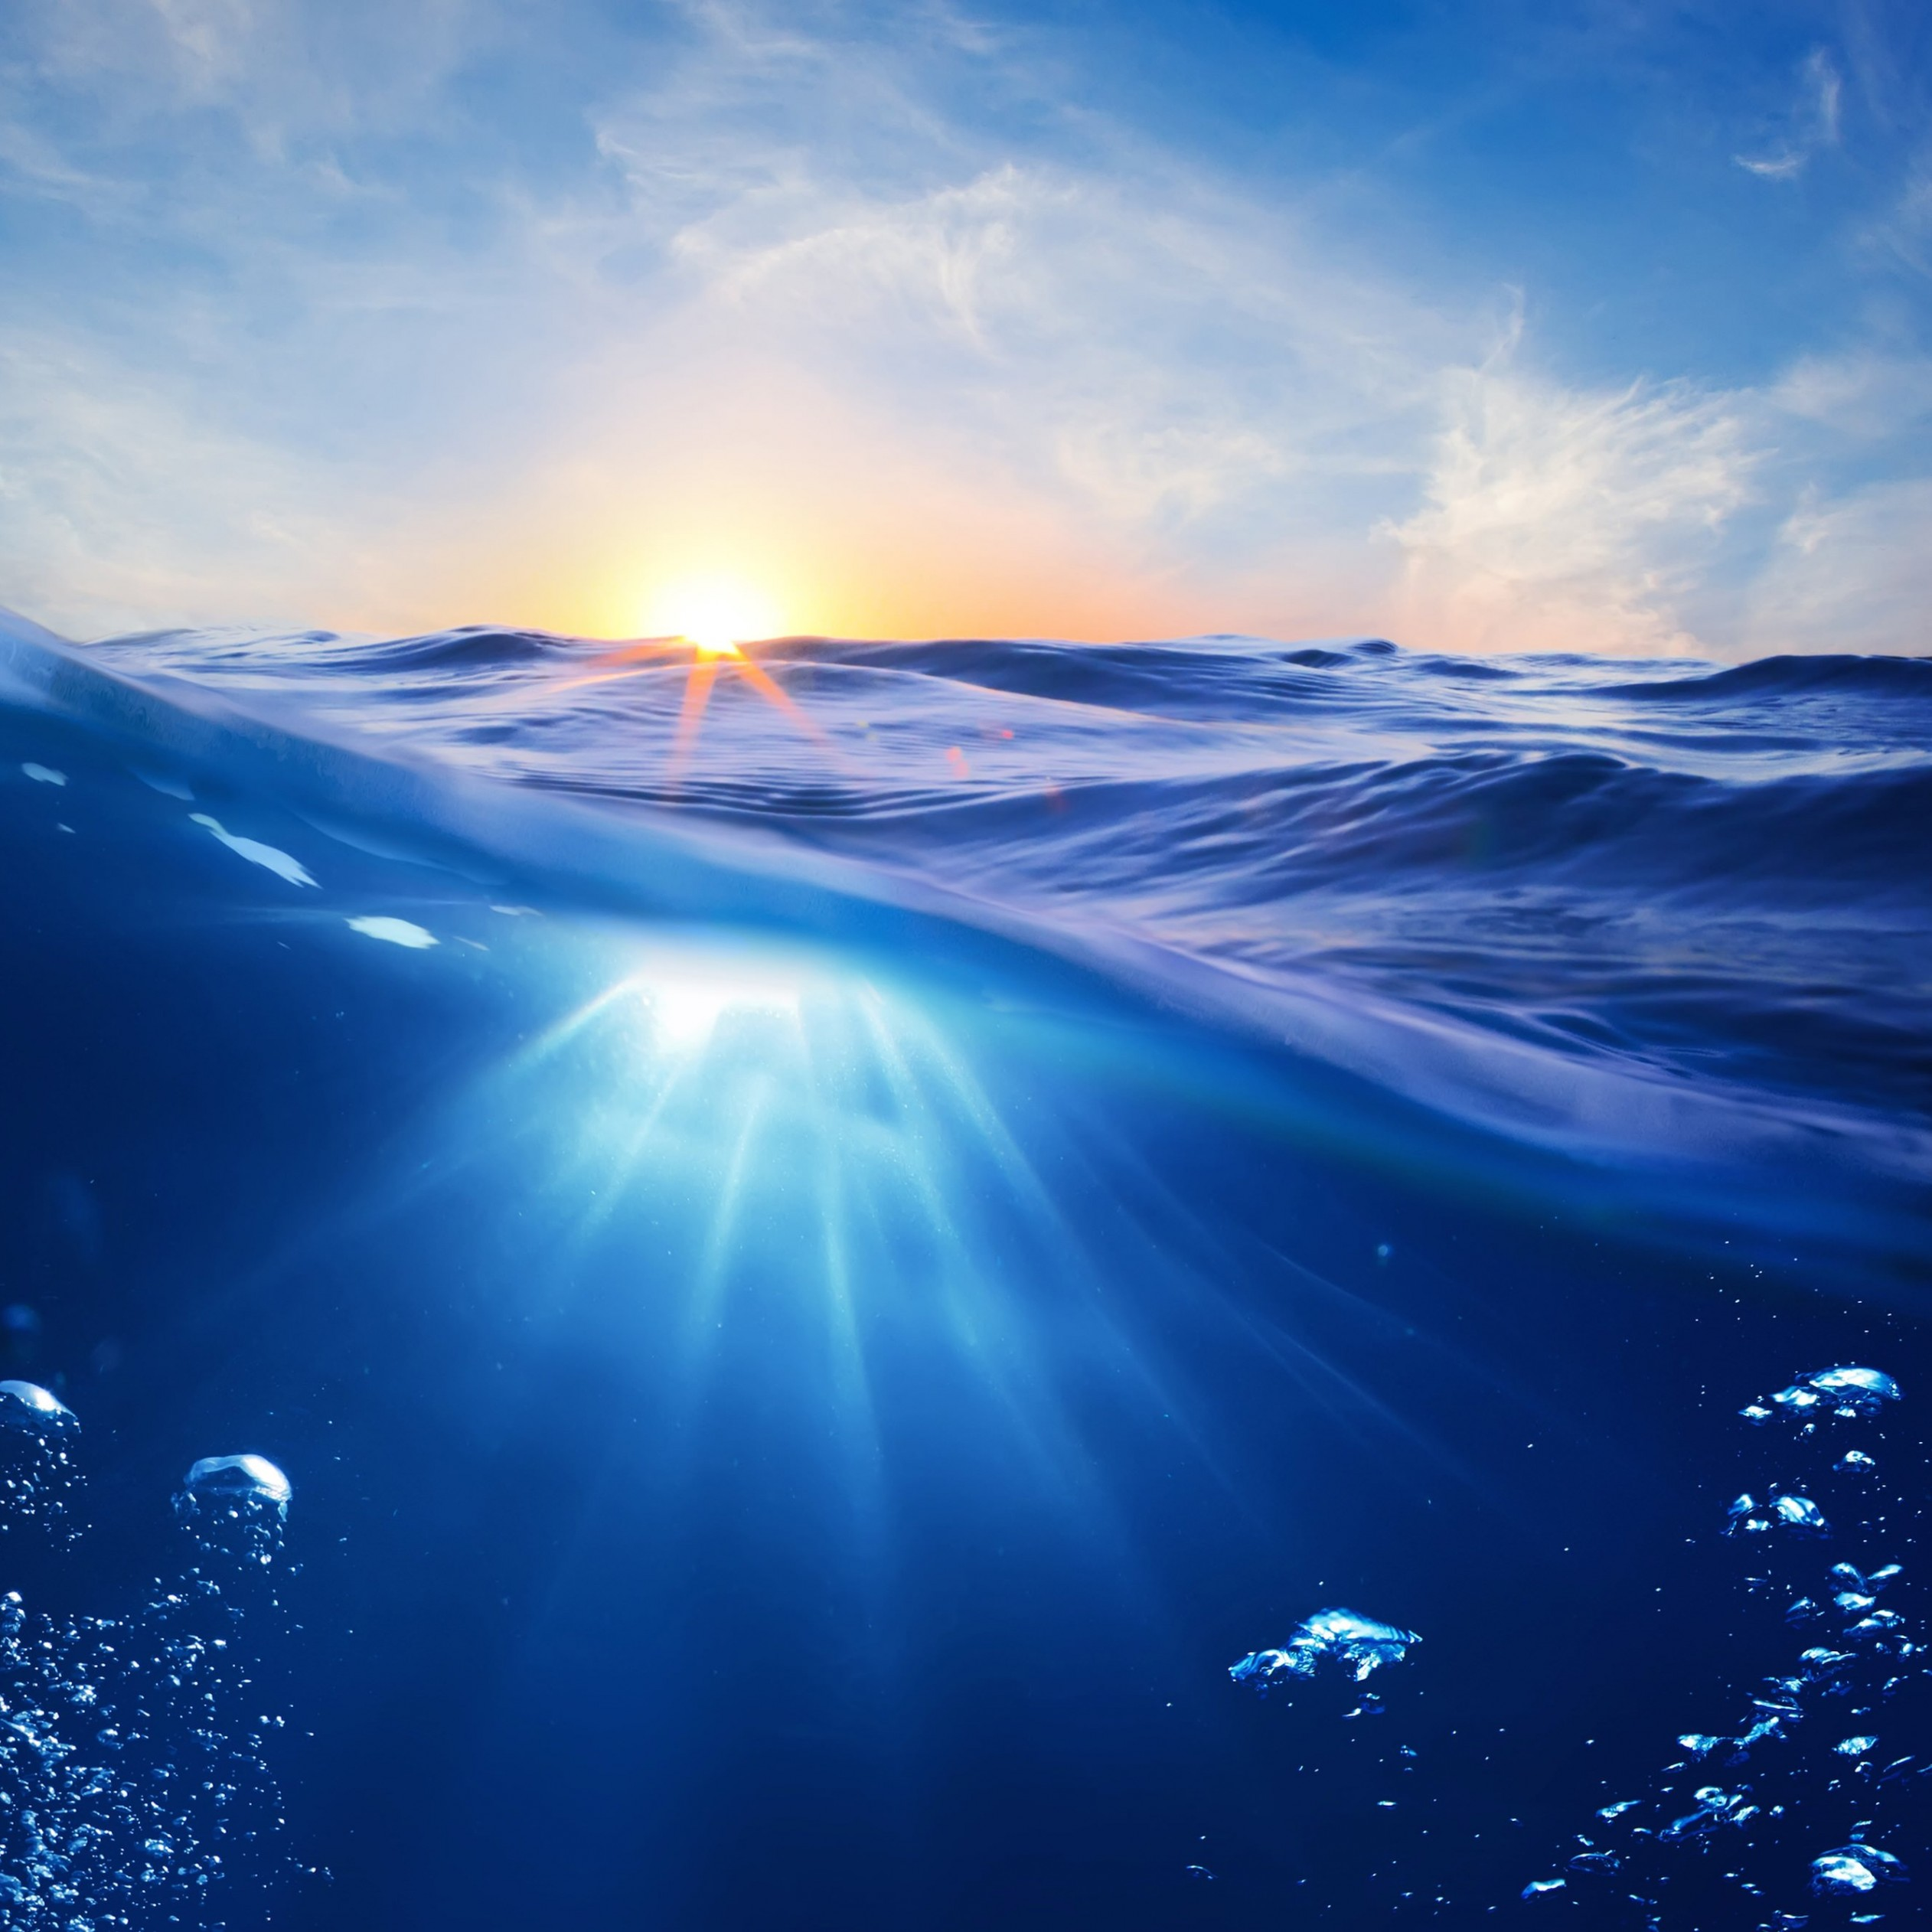 Sunrise Half Underwater Wallpaper for Apple iPad mini 2